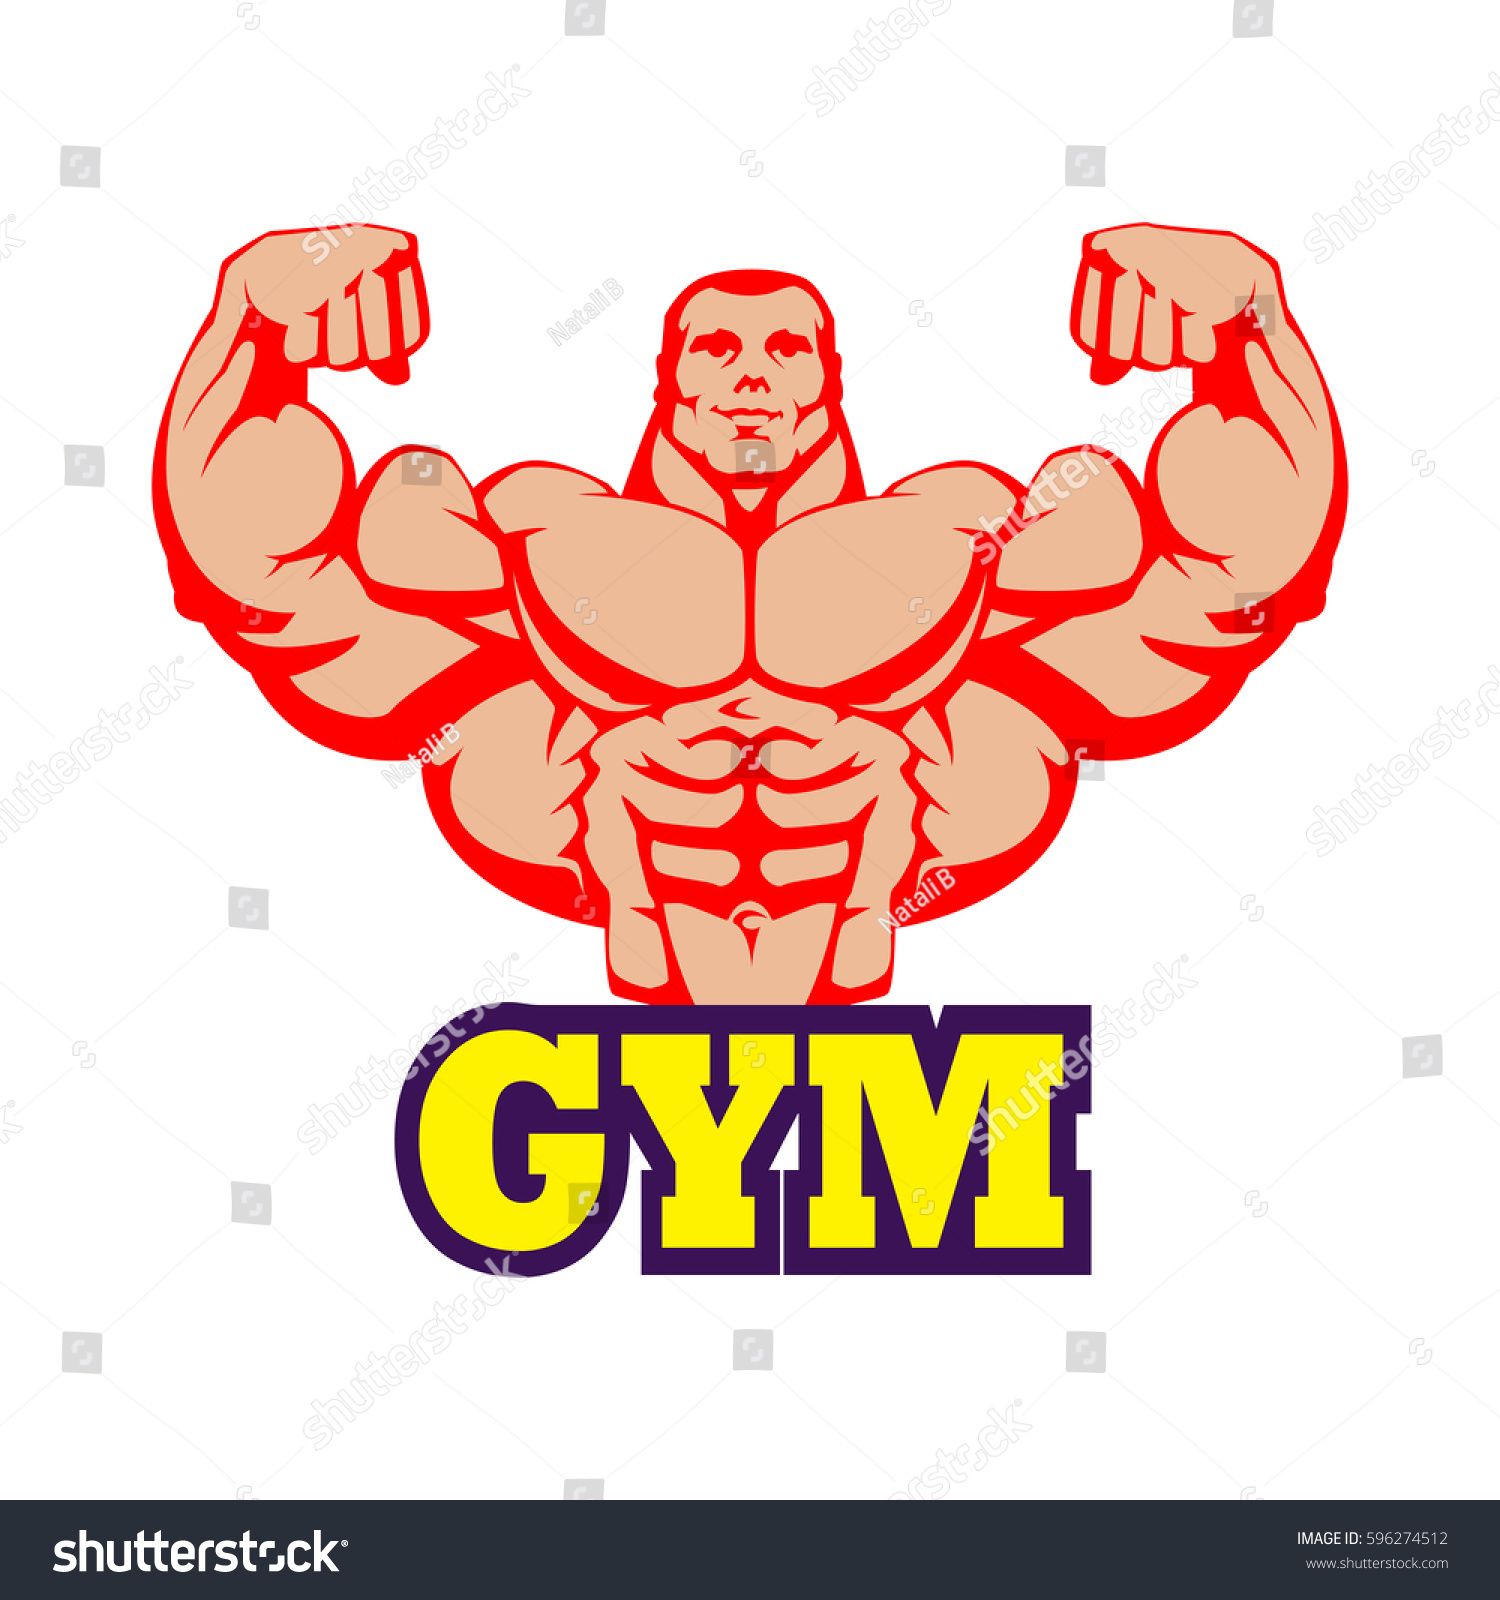 Strong Bodybuilder Huge Biceps Gym Logo Design Yellow Letters Red Body Vector EPS